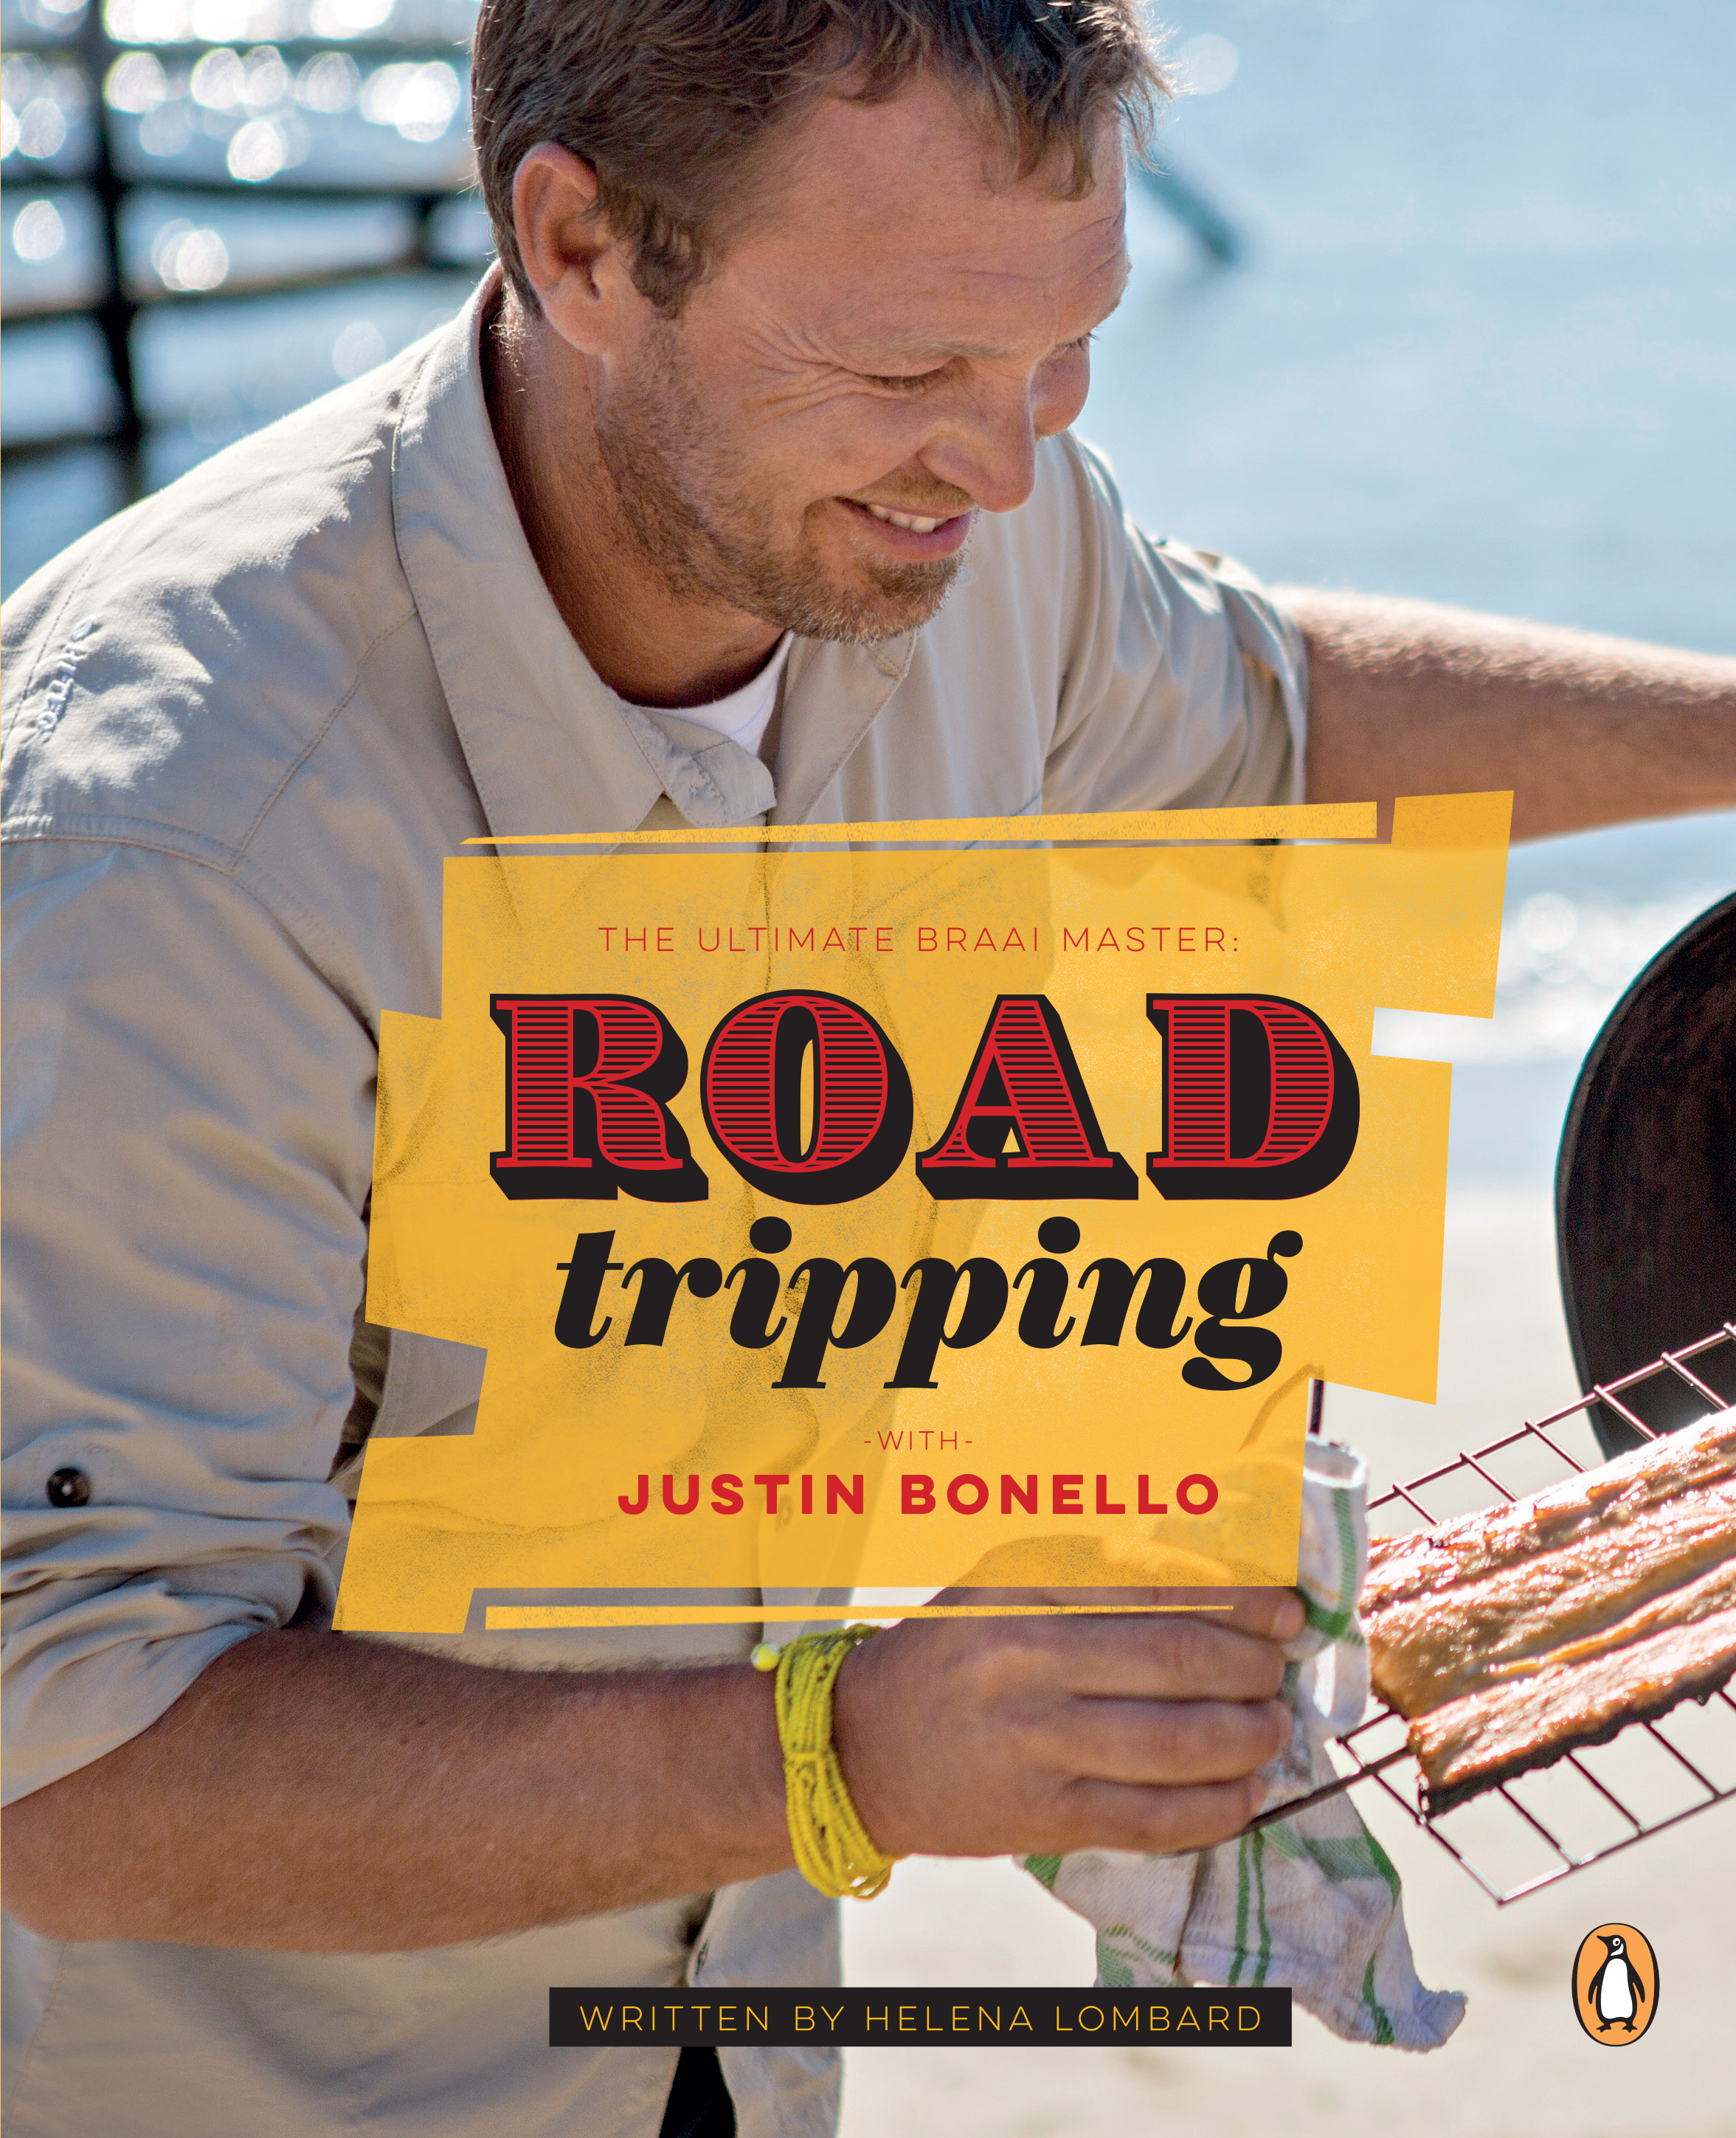 Road Tripping Justin Bonello